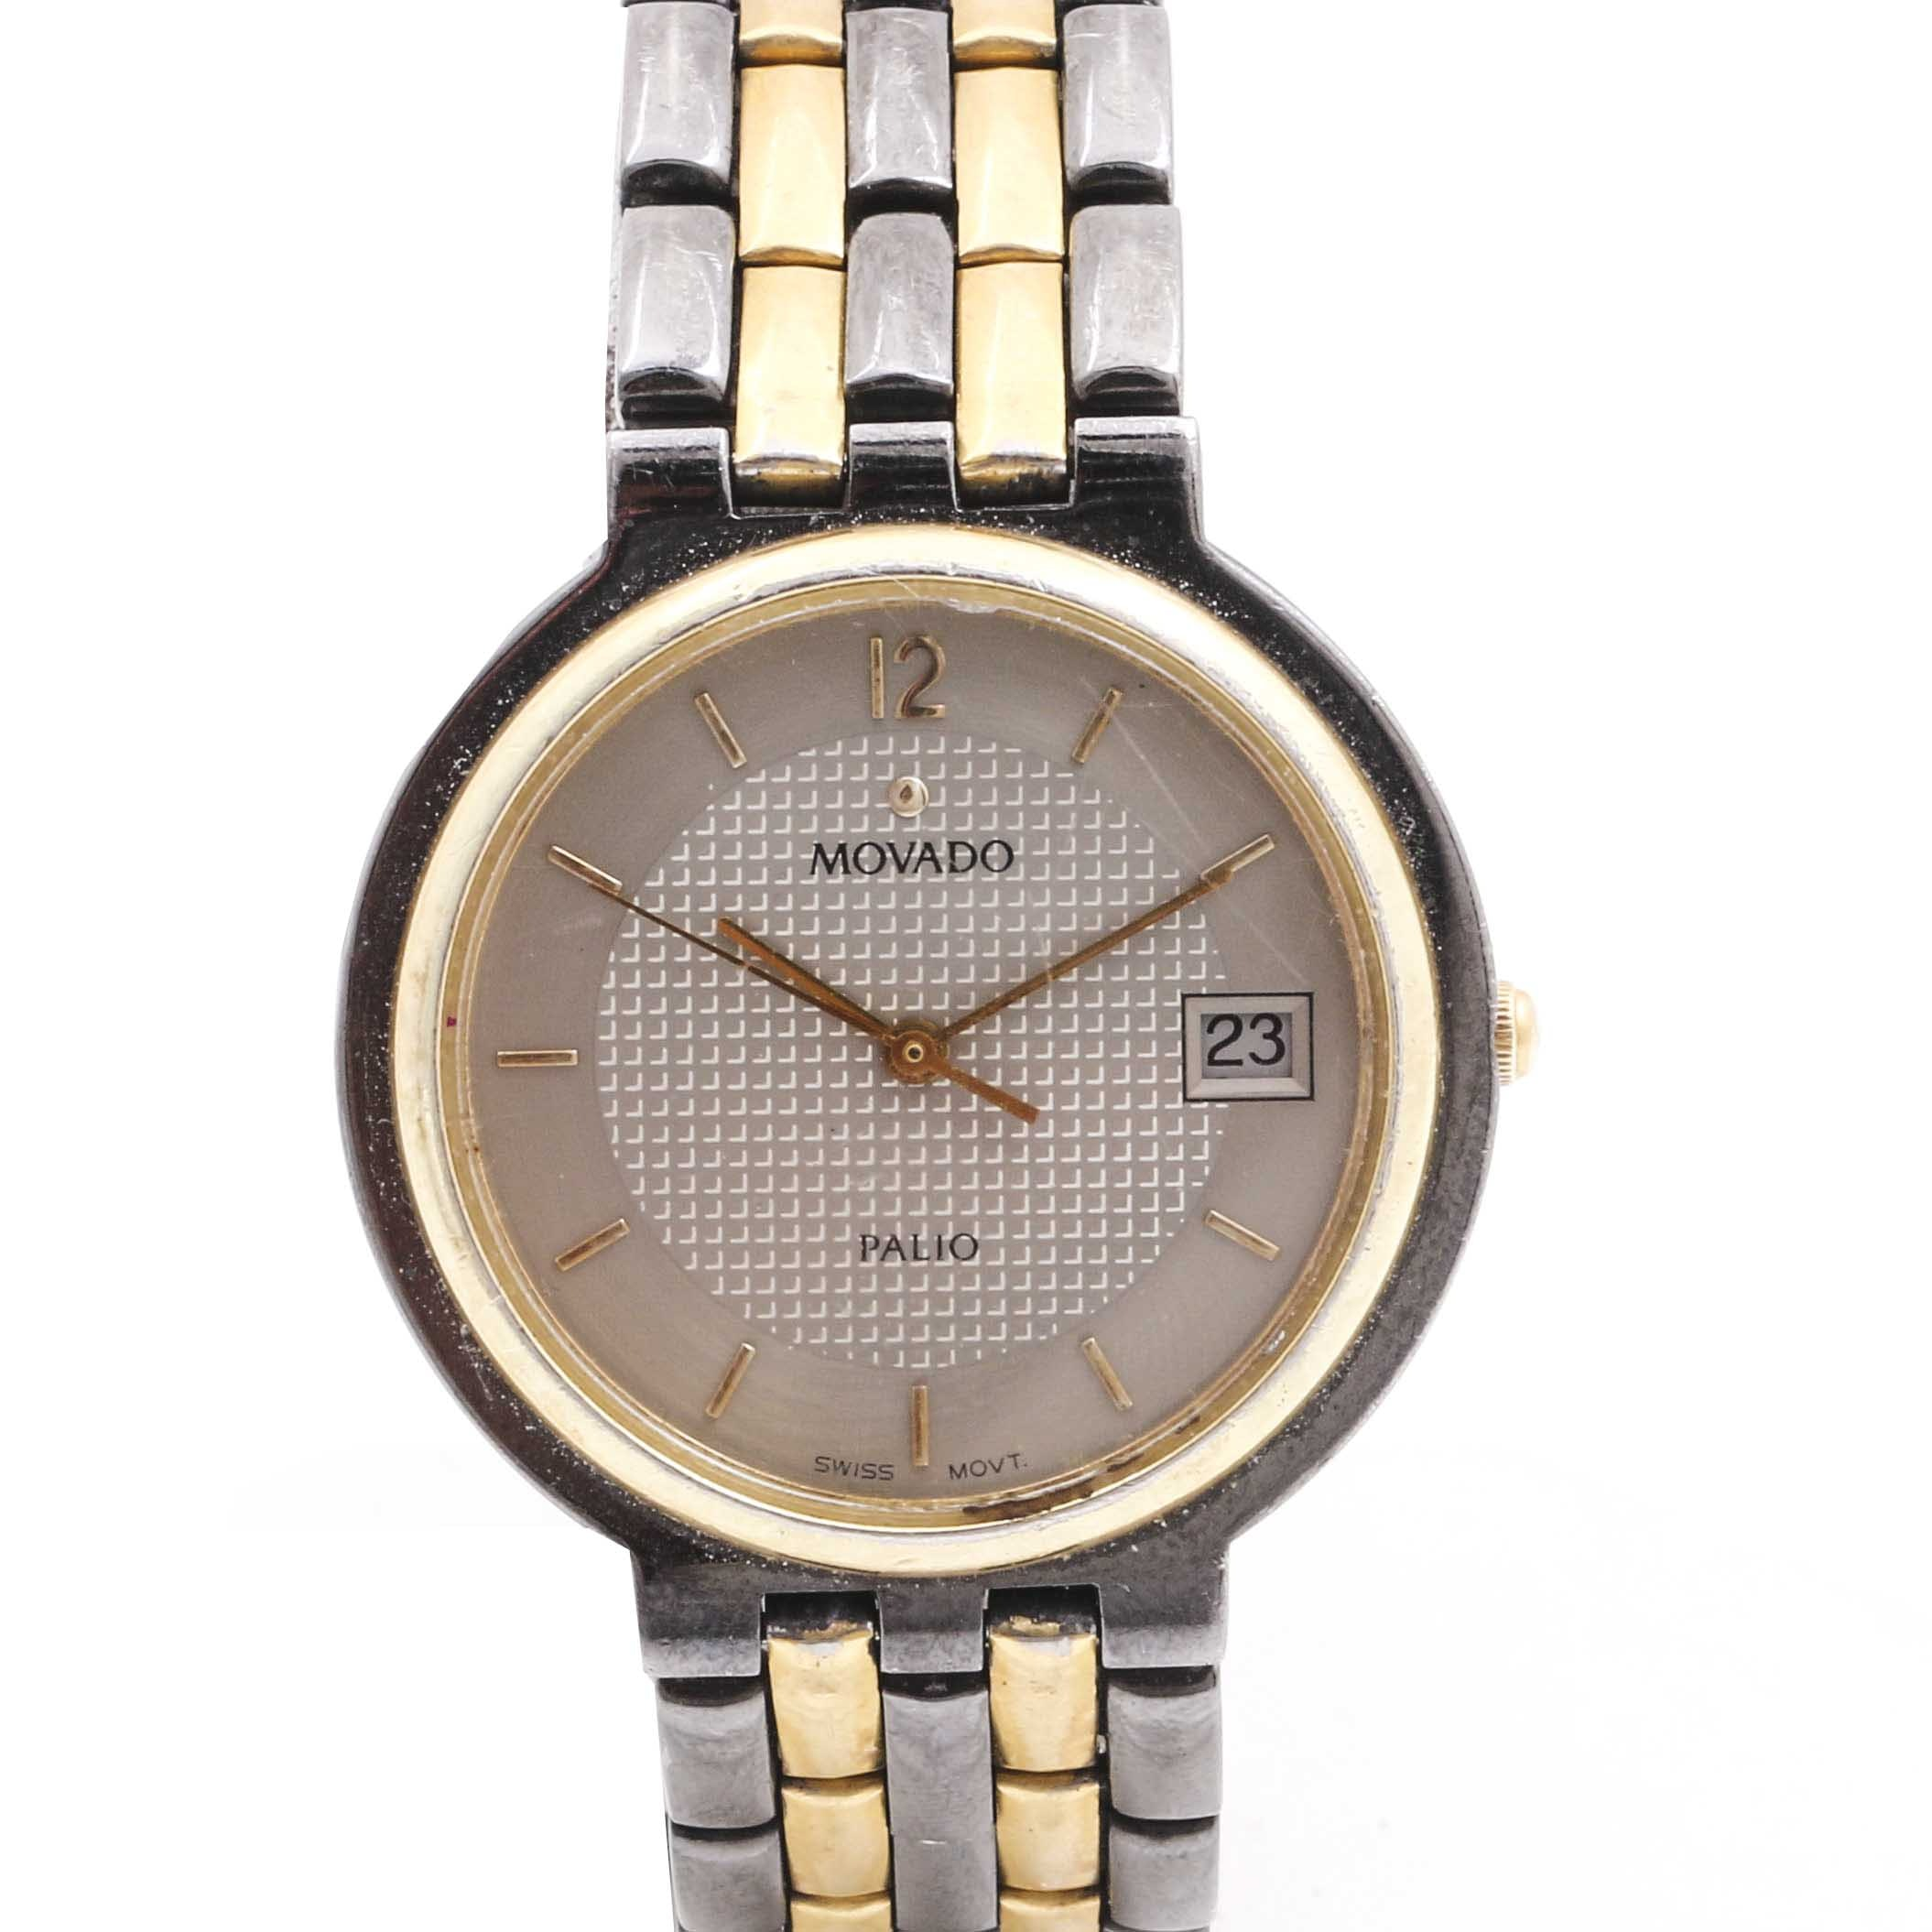 Movado Palio Stainless Steel and 18K Gold Electroplated Wristwatch